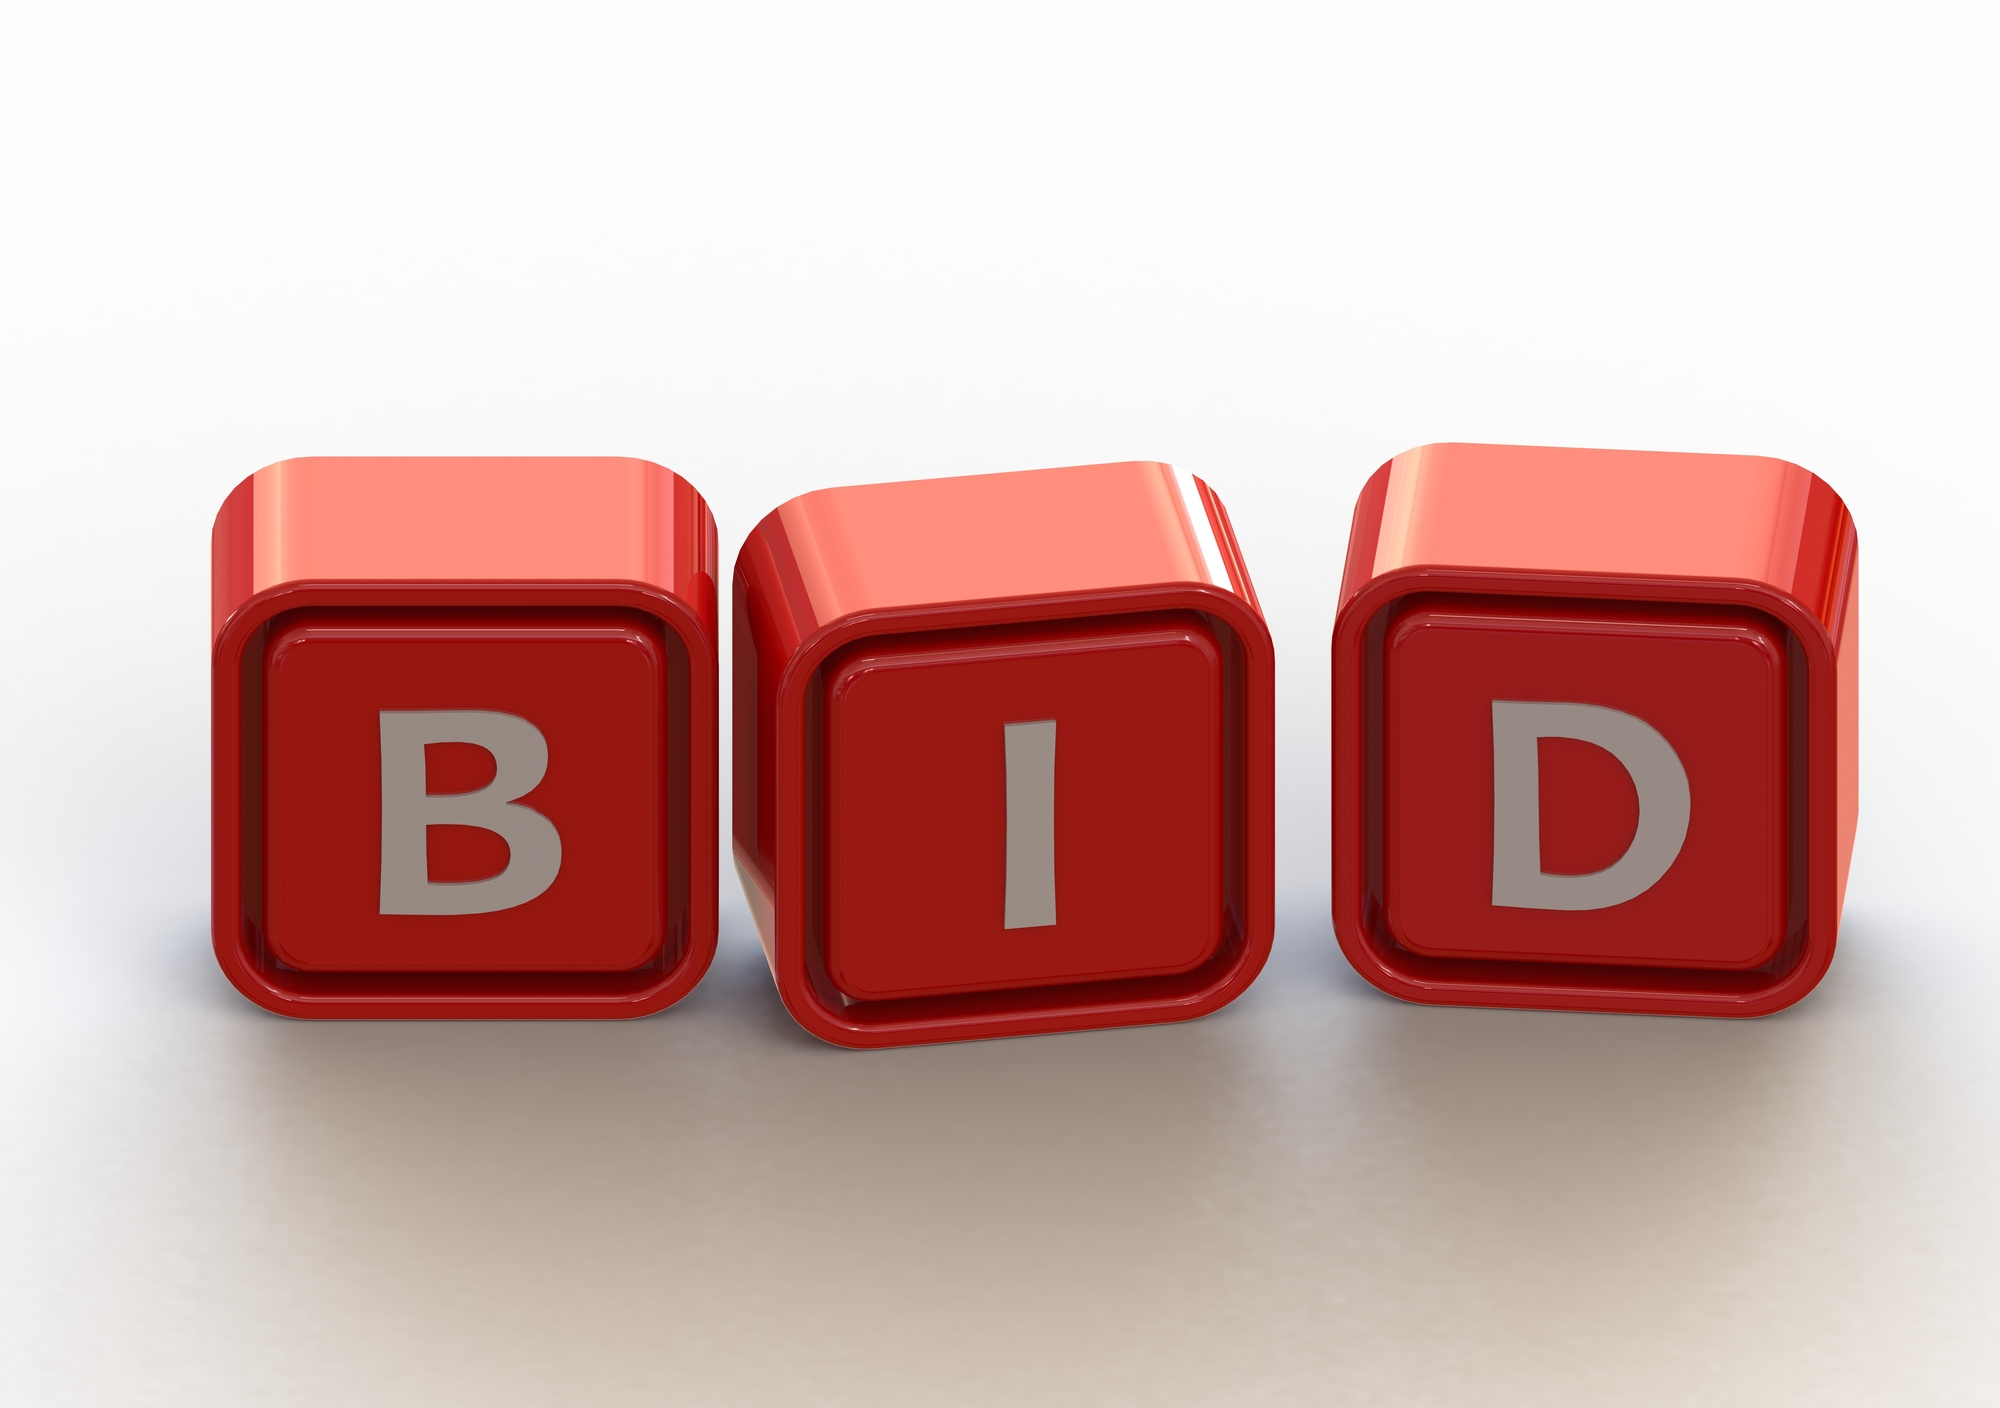 BID In White Letters On Red Blocks For Property Manager Insider Monthly Contractors Blog